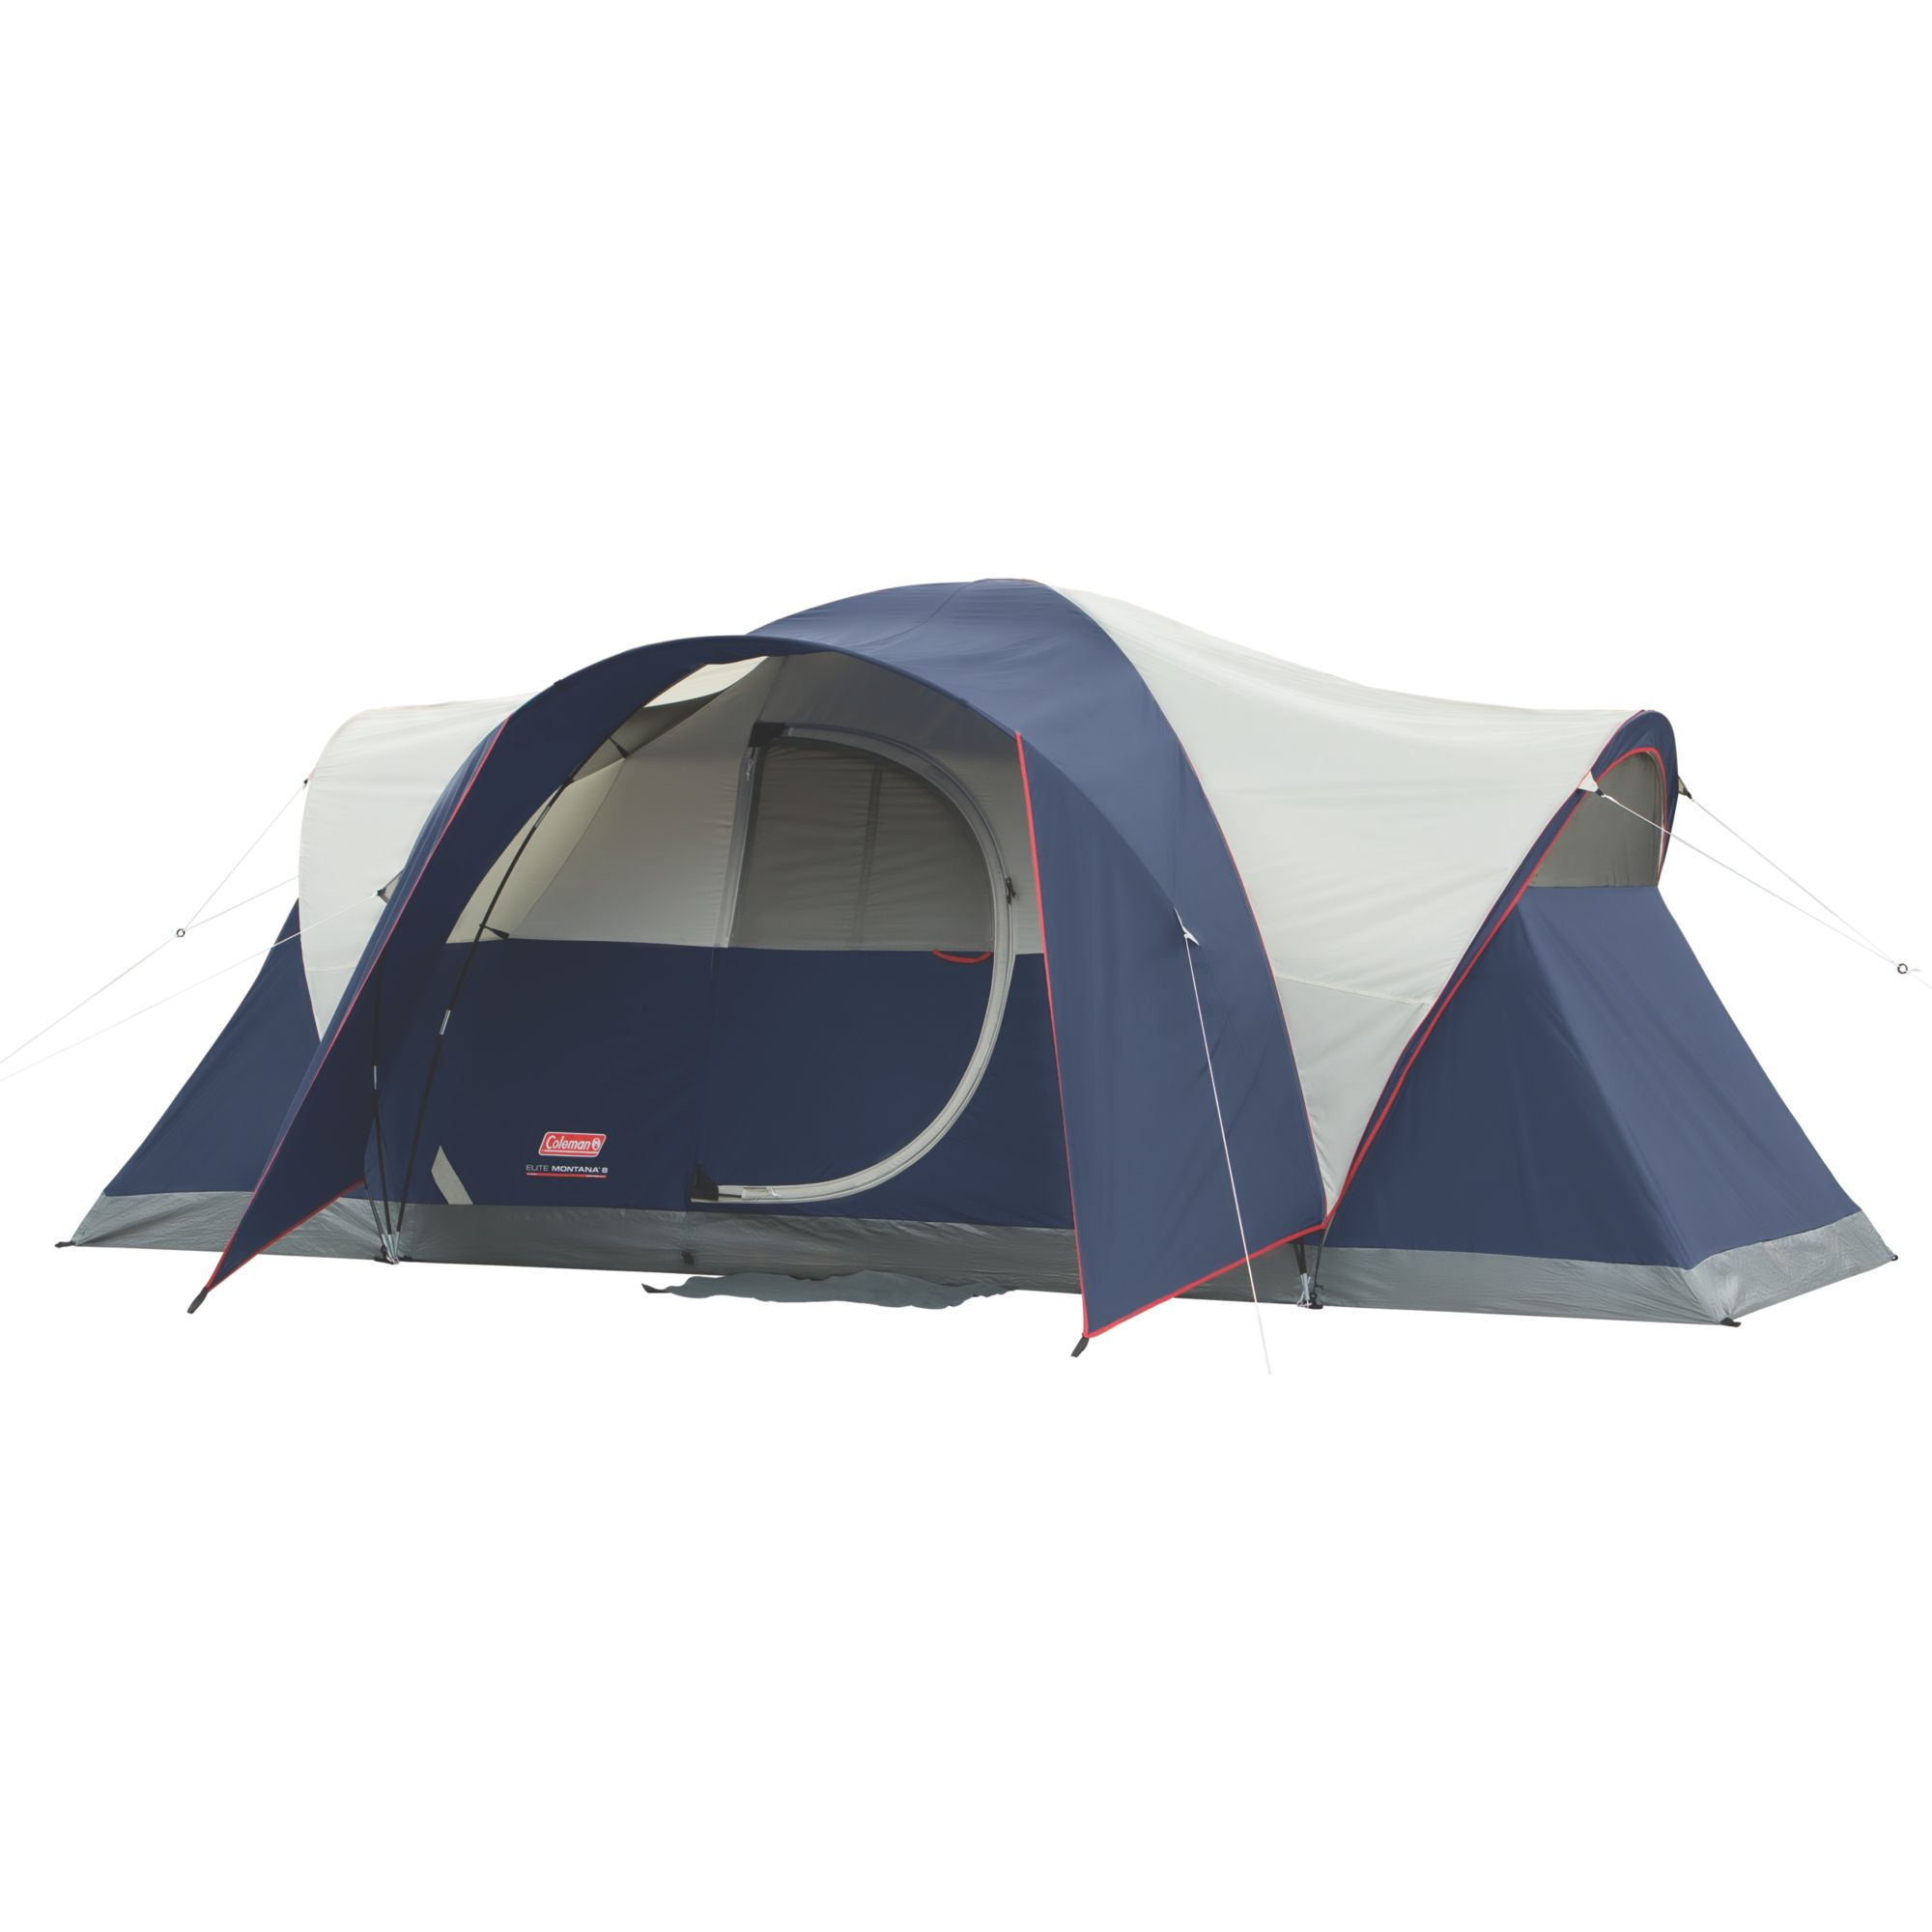 Elite Montana 8 Person Lighted Tent